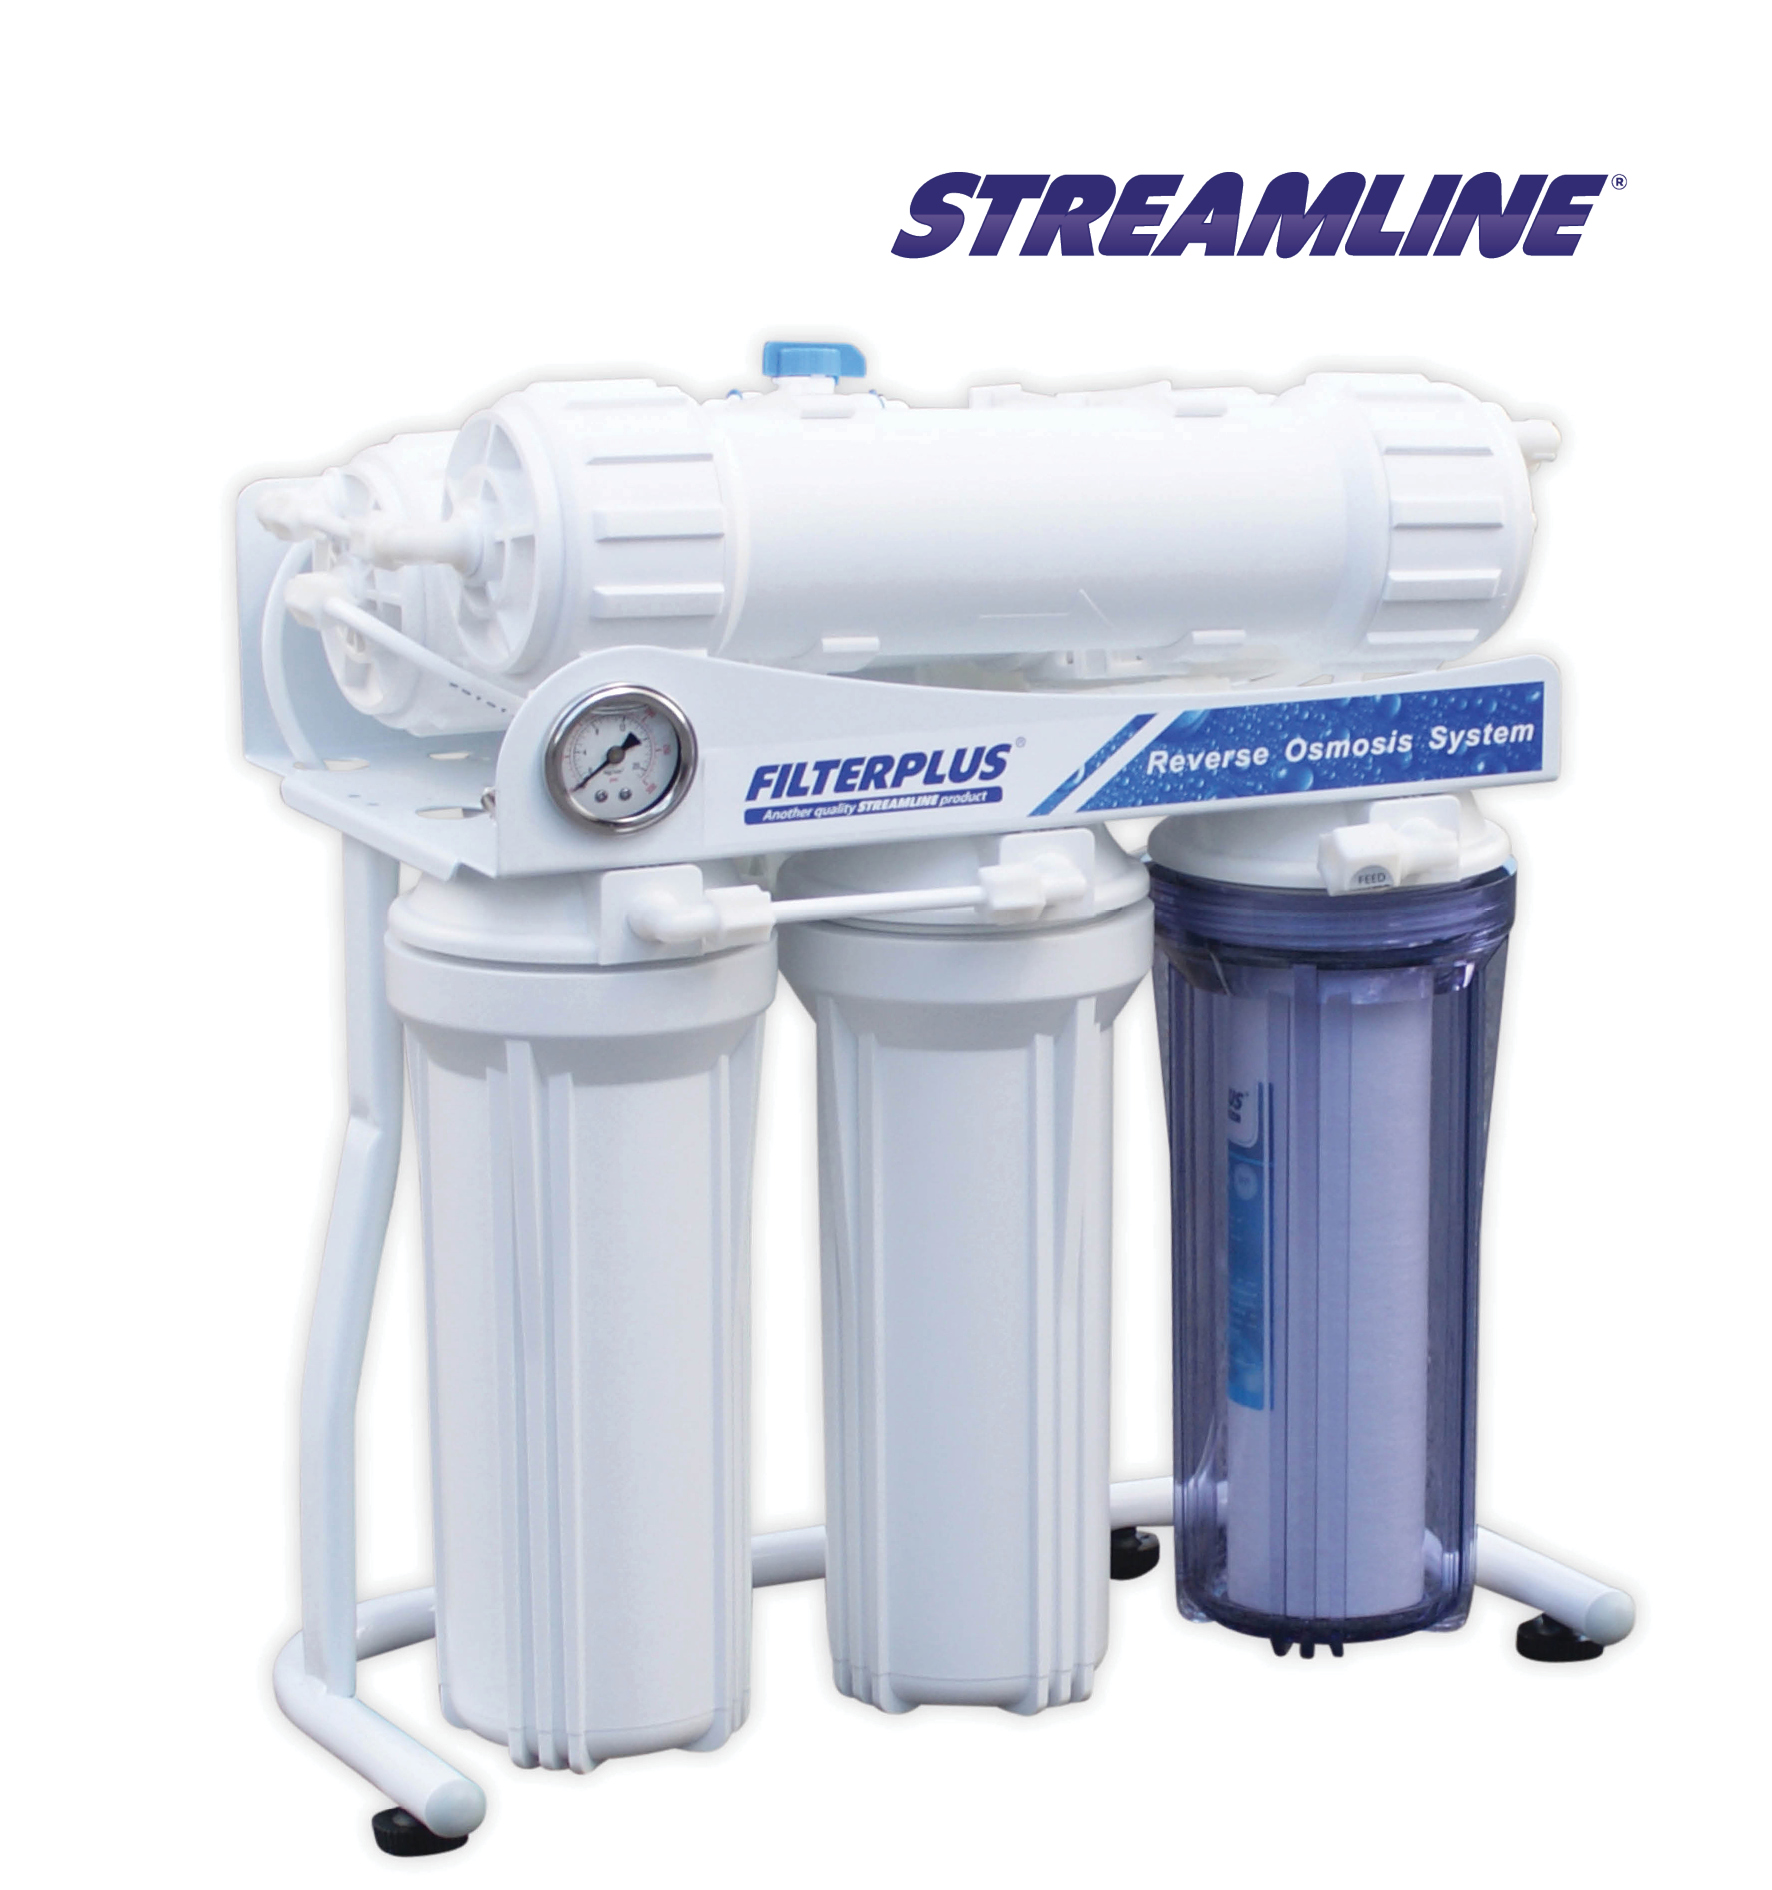 Streamline 600 GPD -F Filterplus Direct Flow R.O. System